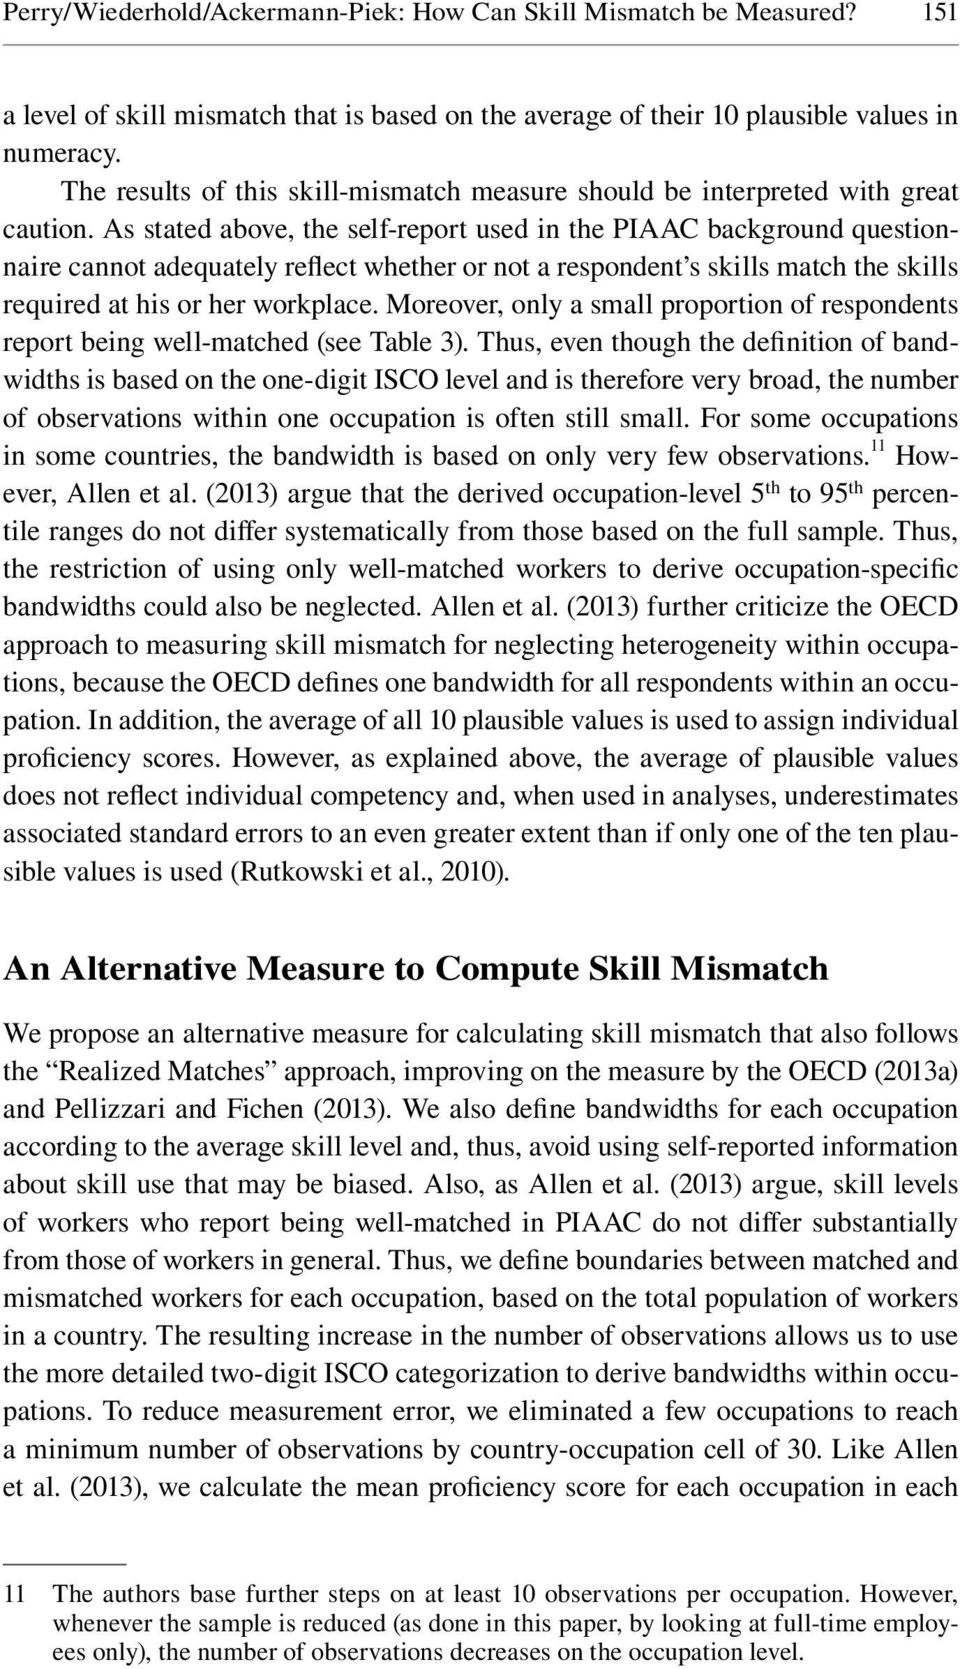 As stated above, the self-report used in the PIAAC background questionnaire cannot adequately reflect whether or not a respondent s skills match the skills required at his or her workplace.